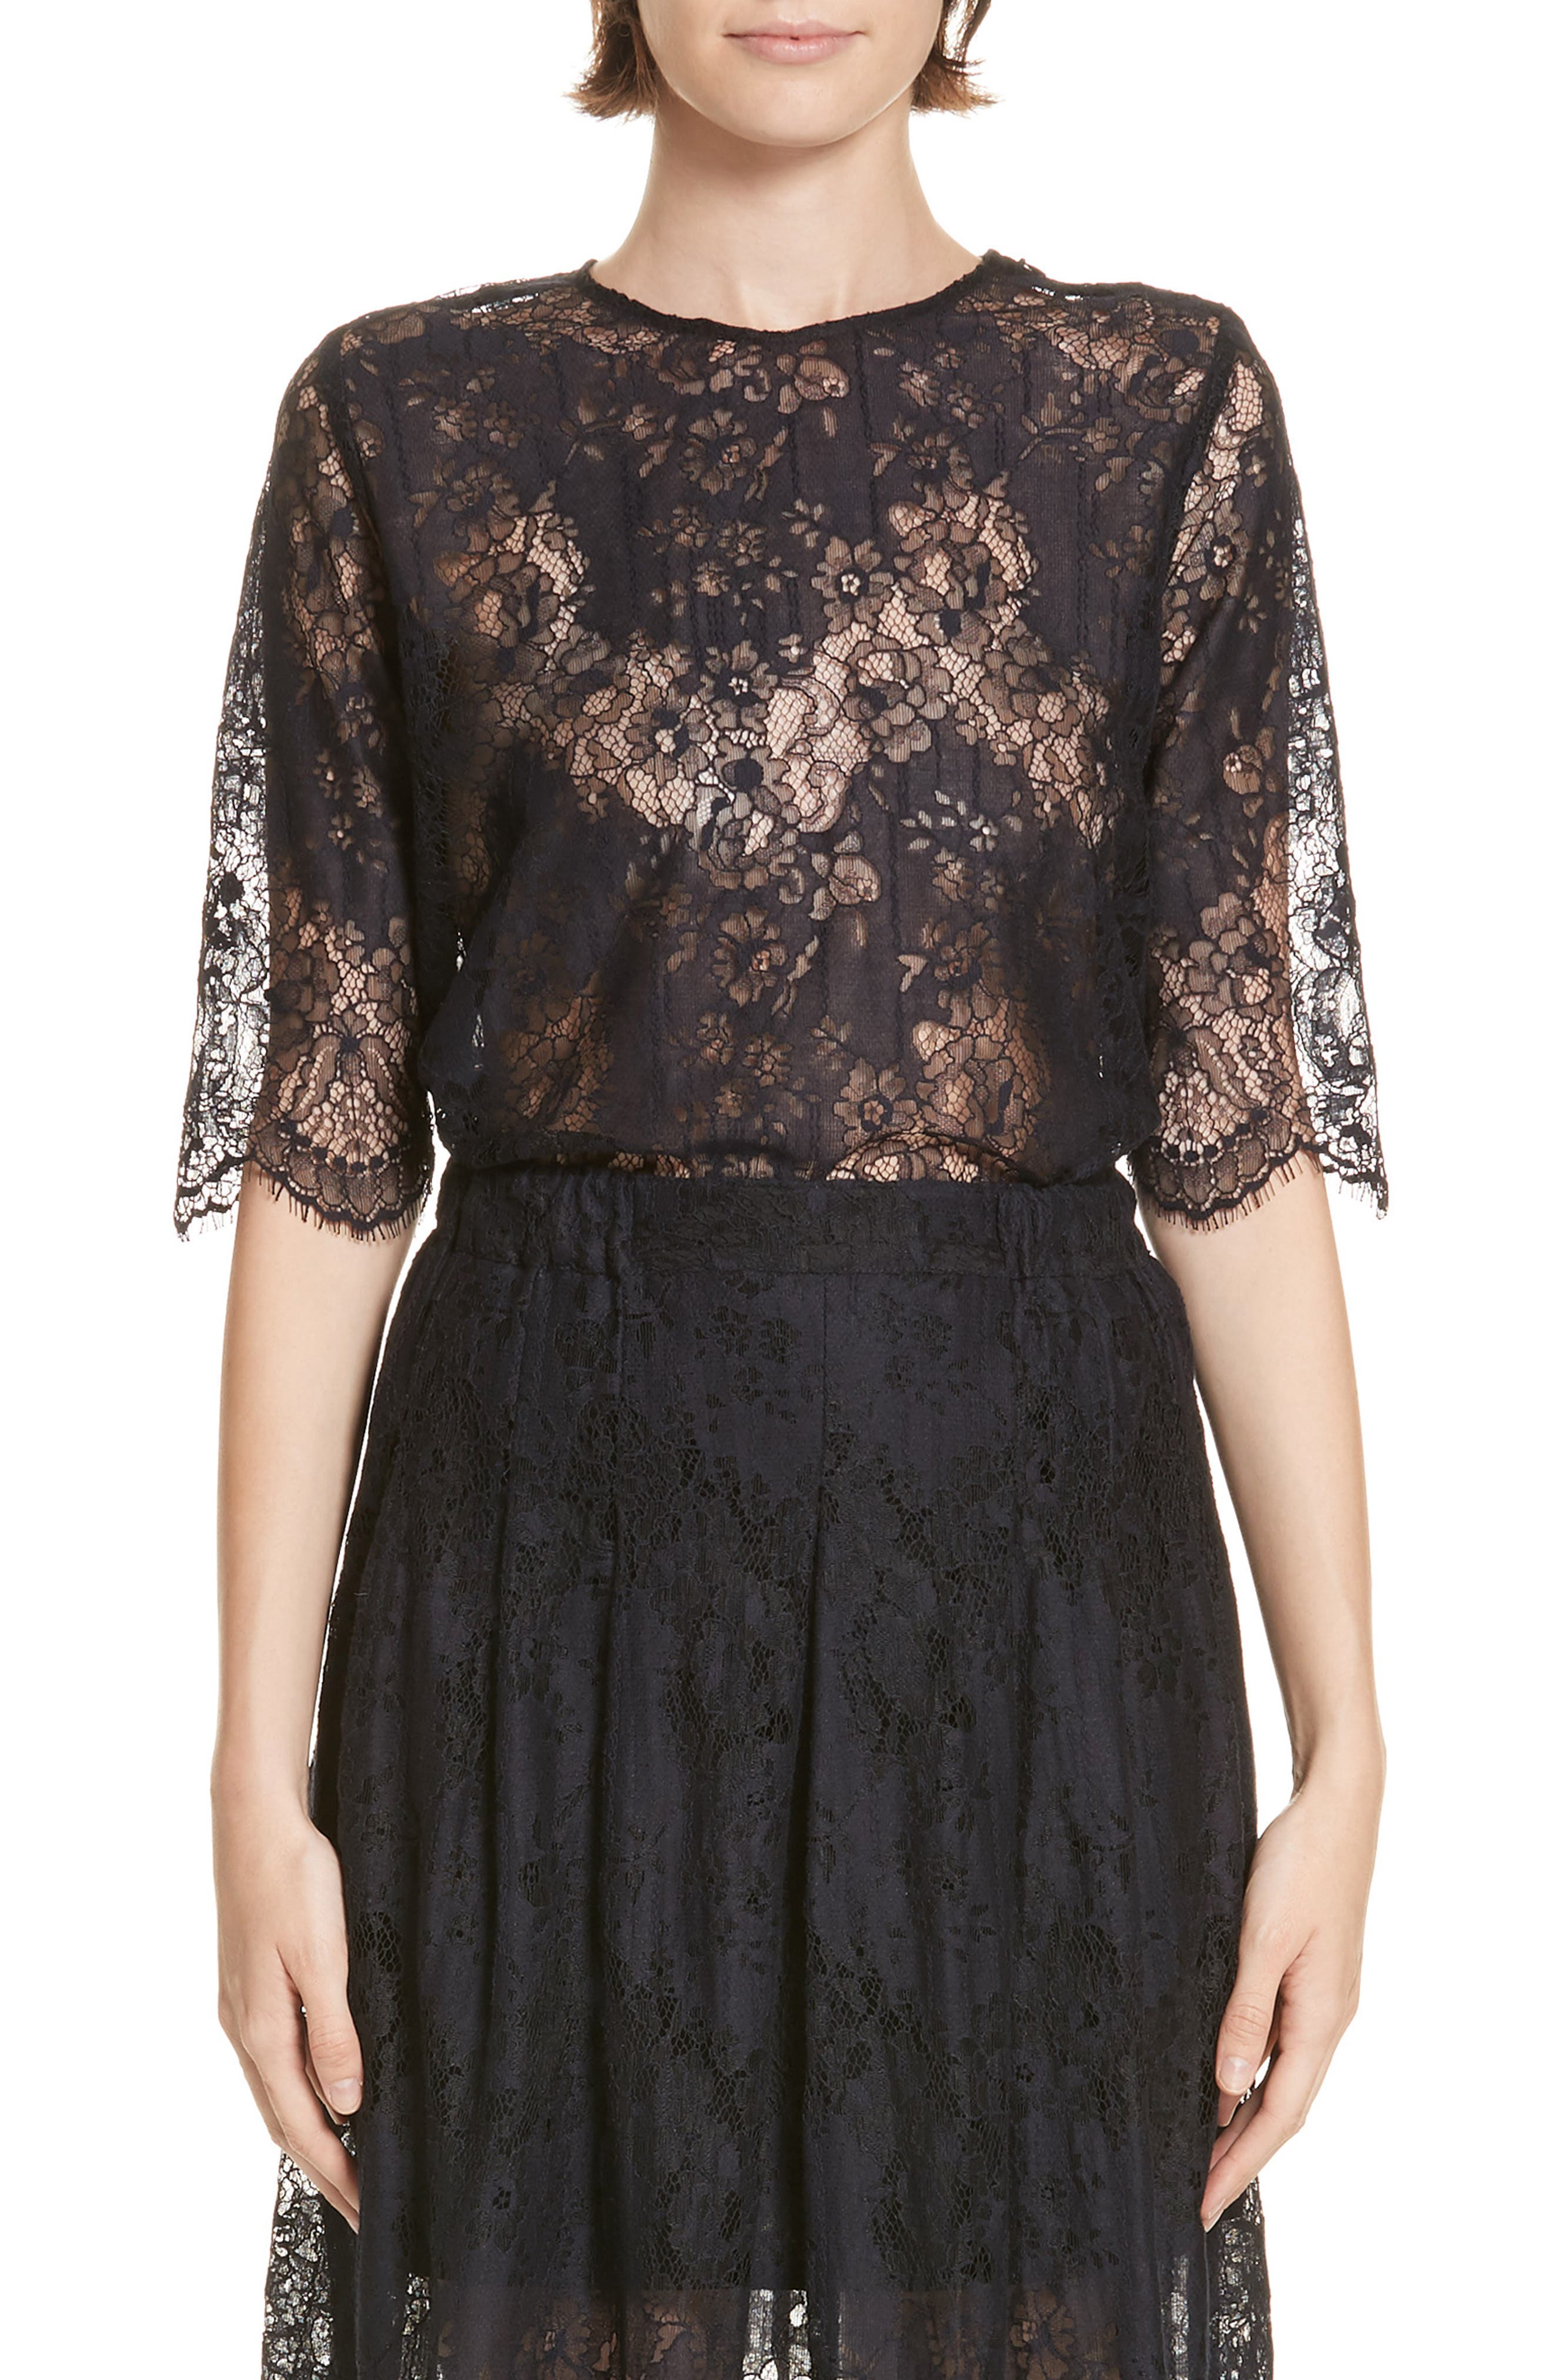 ROSEANNA Martial Lace Top in Marine